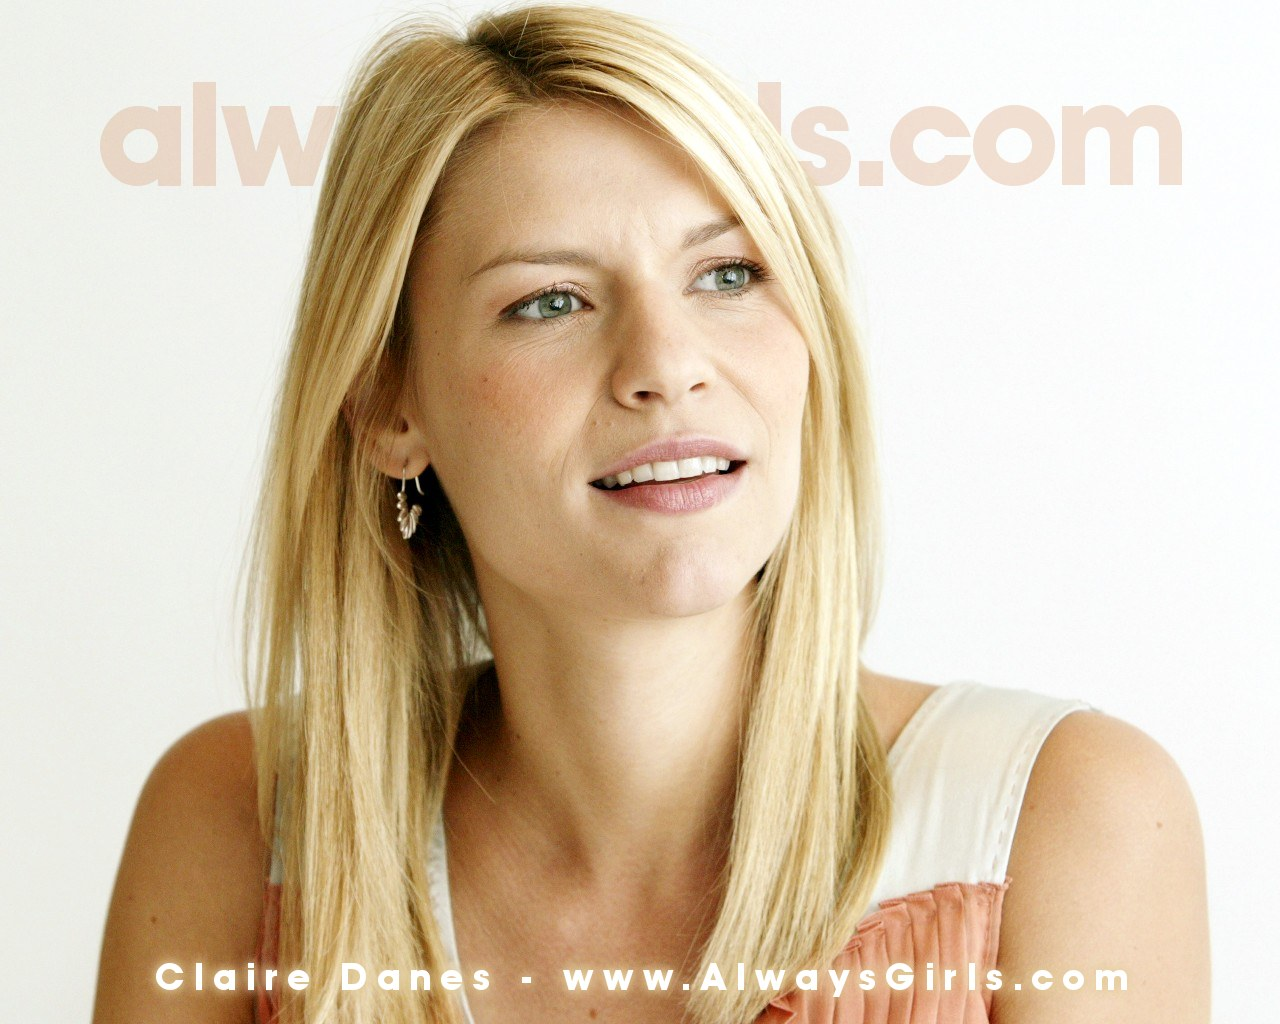 Claire Danes - Wallpapers